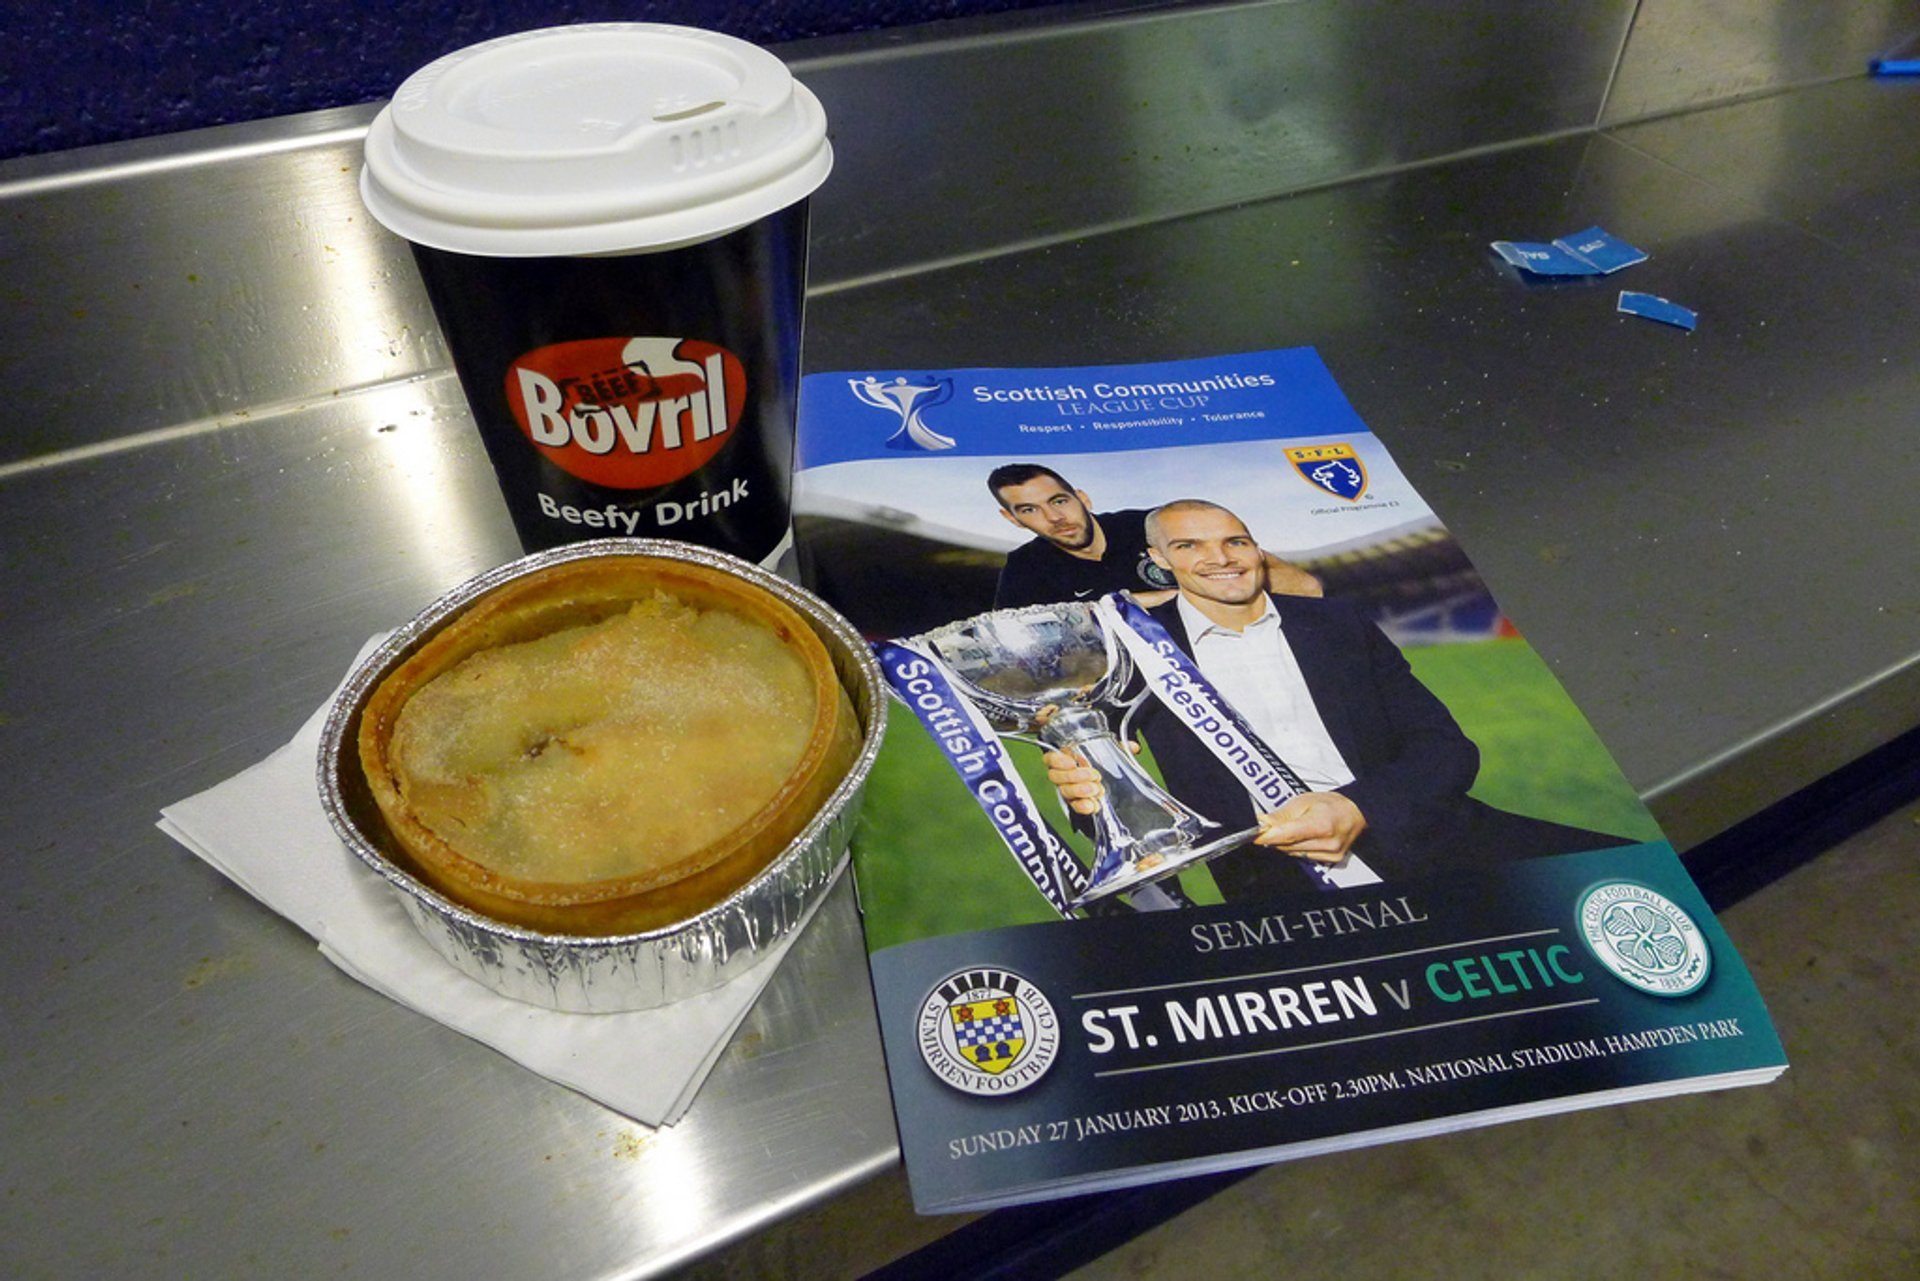 Scotch Pie and Bovril in Scotland - Best Season 2019